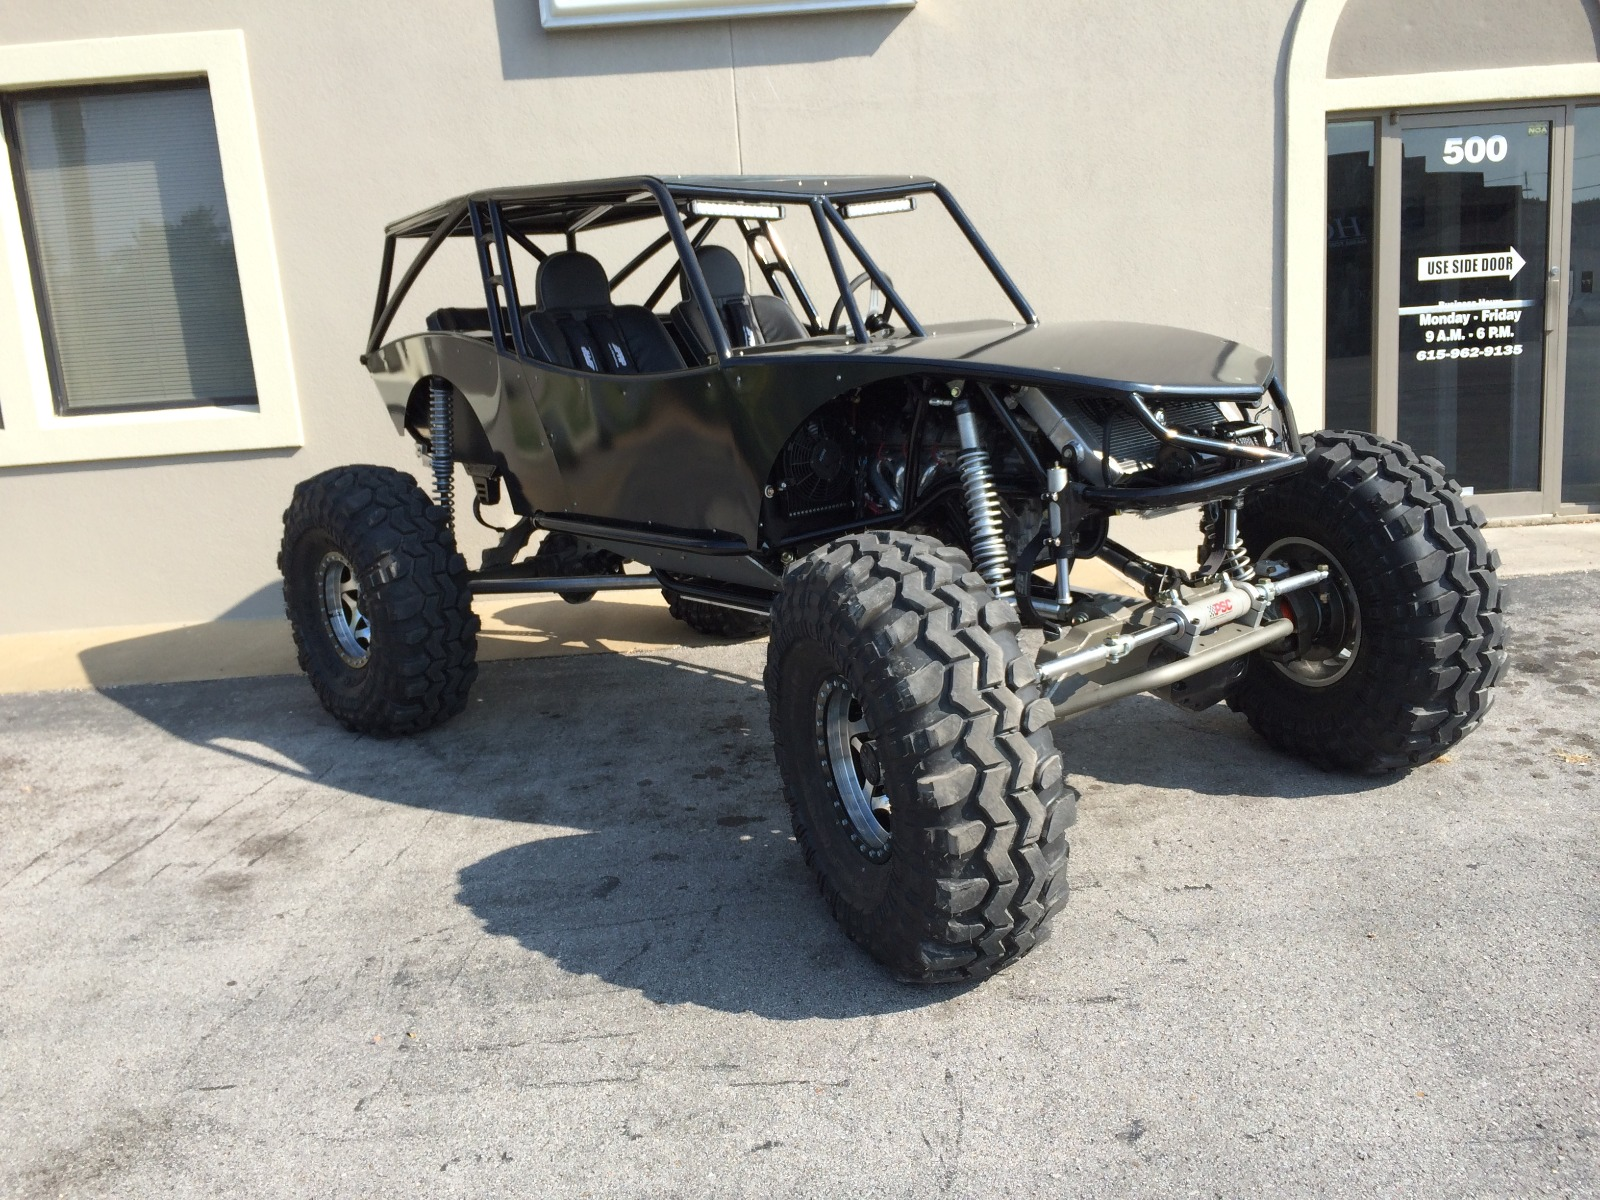 Revolution 4 Seat Rock Crawler Chassis Buggy 5